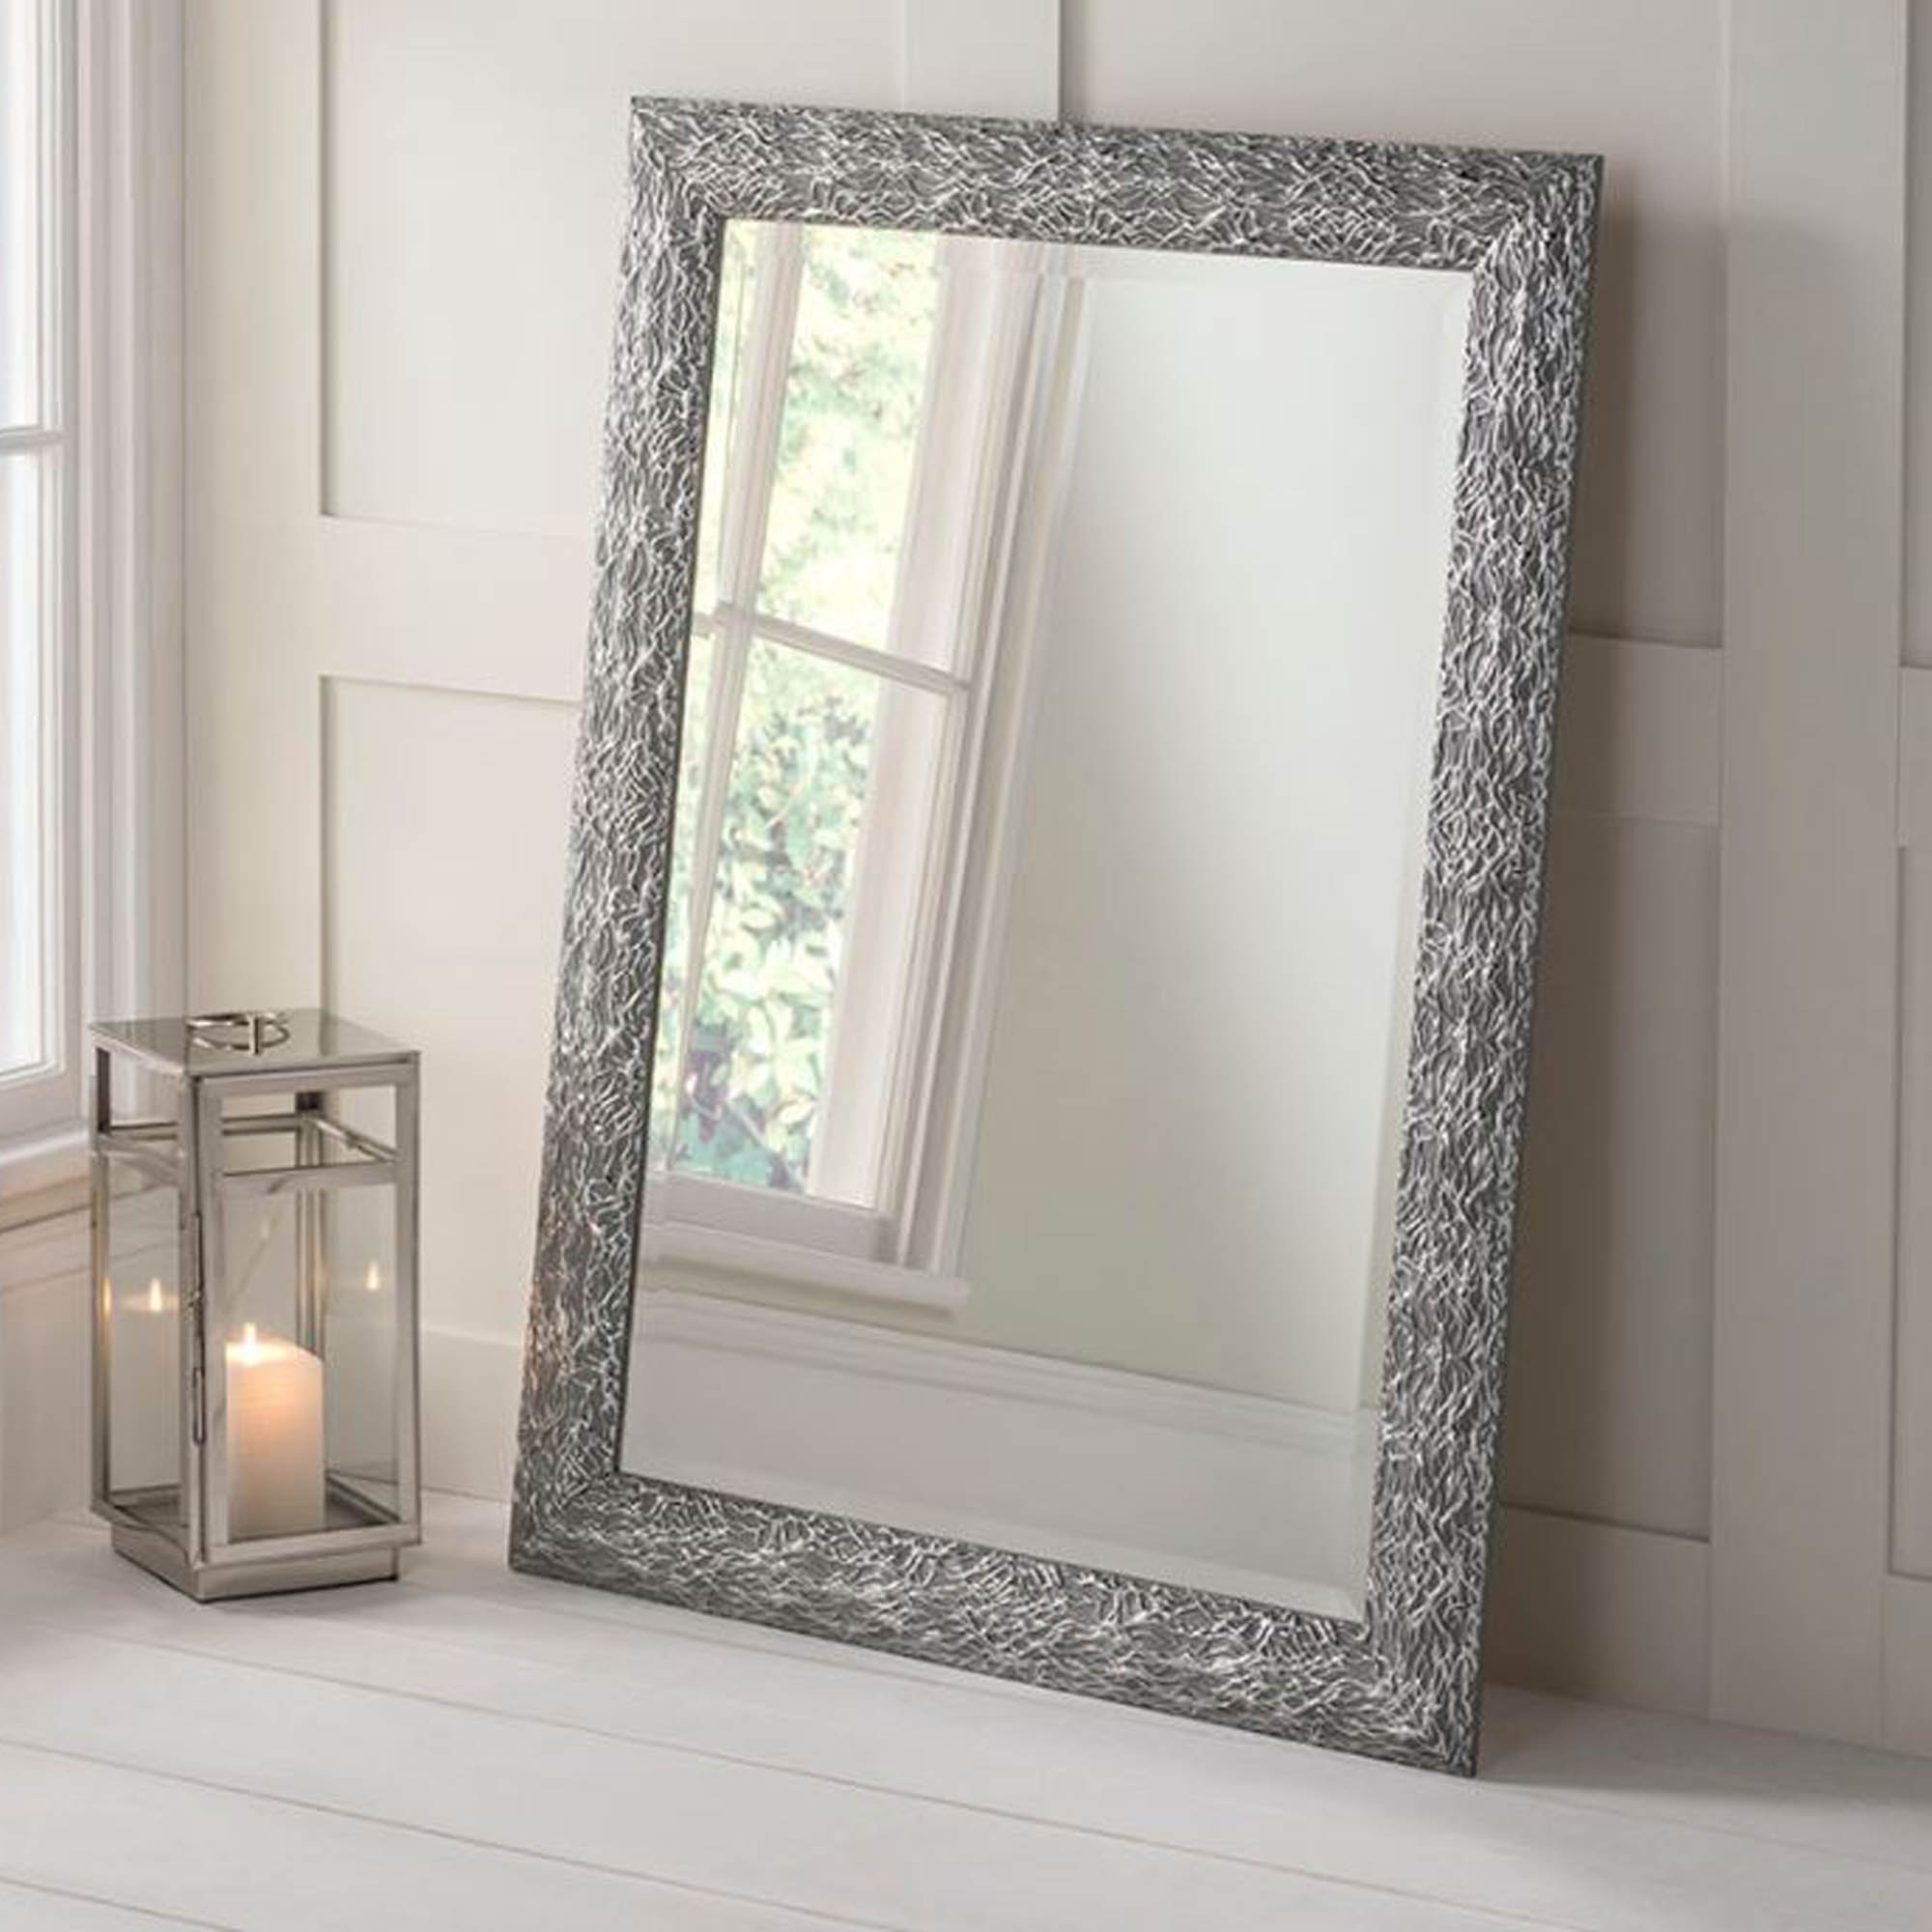 Detailed Rectangular Grey and Silver Wall Mirror | HD365 on Wall Mirrors id=54302